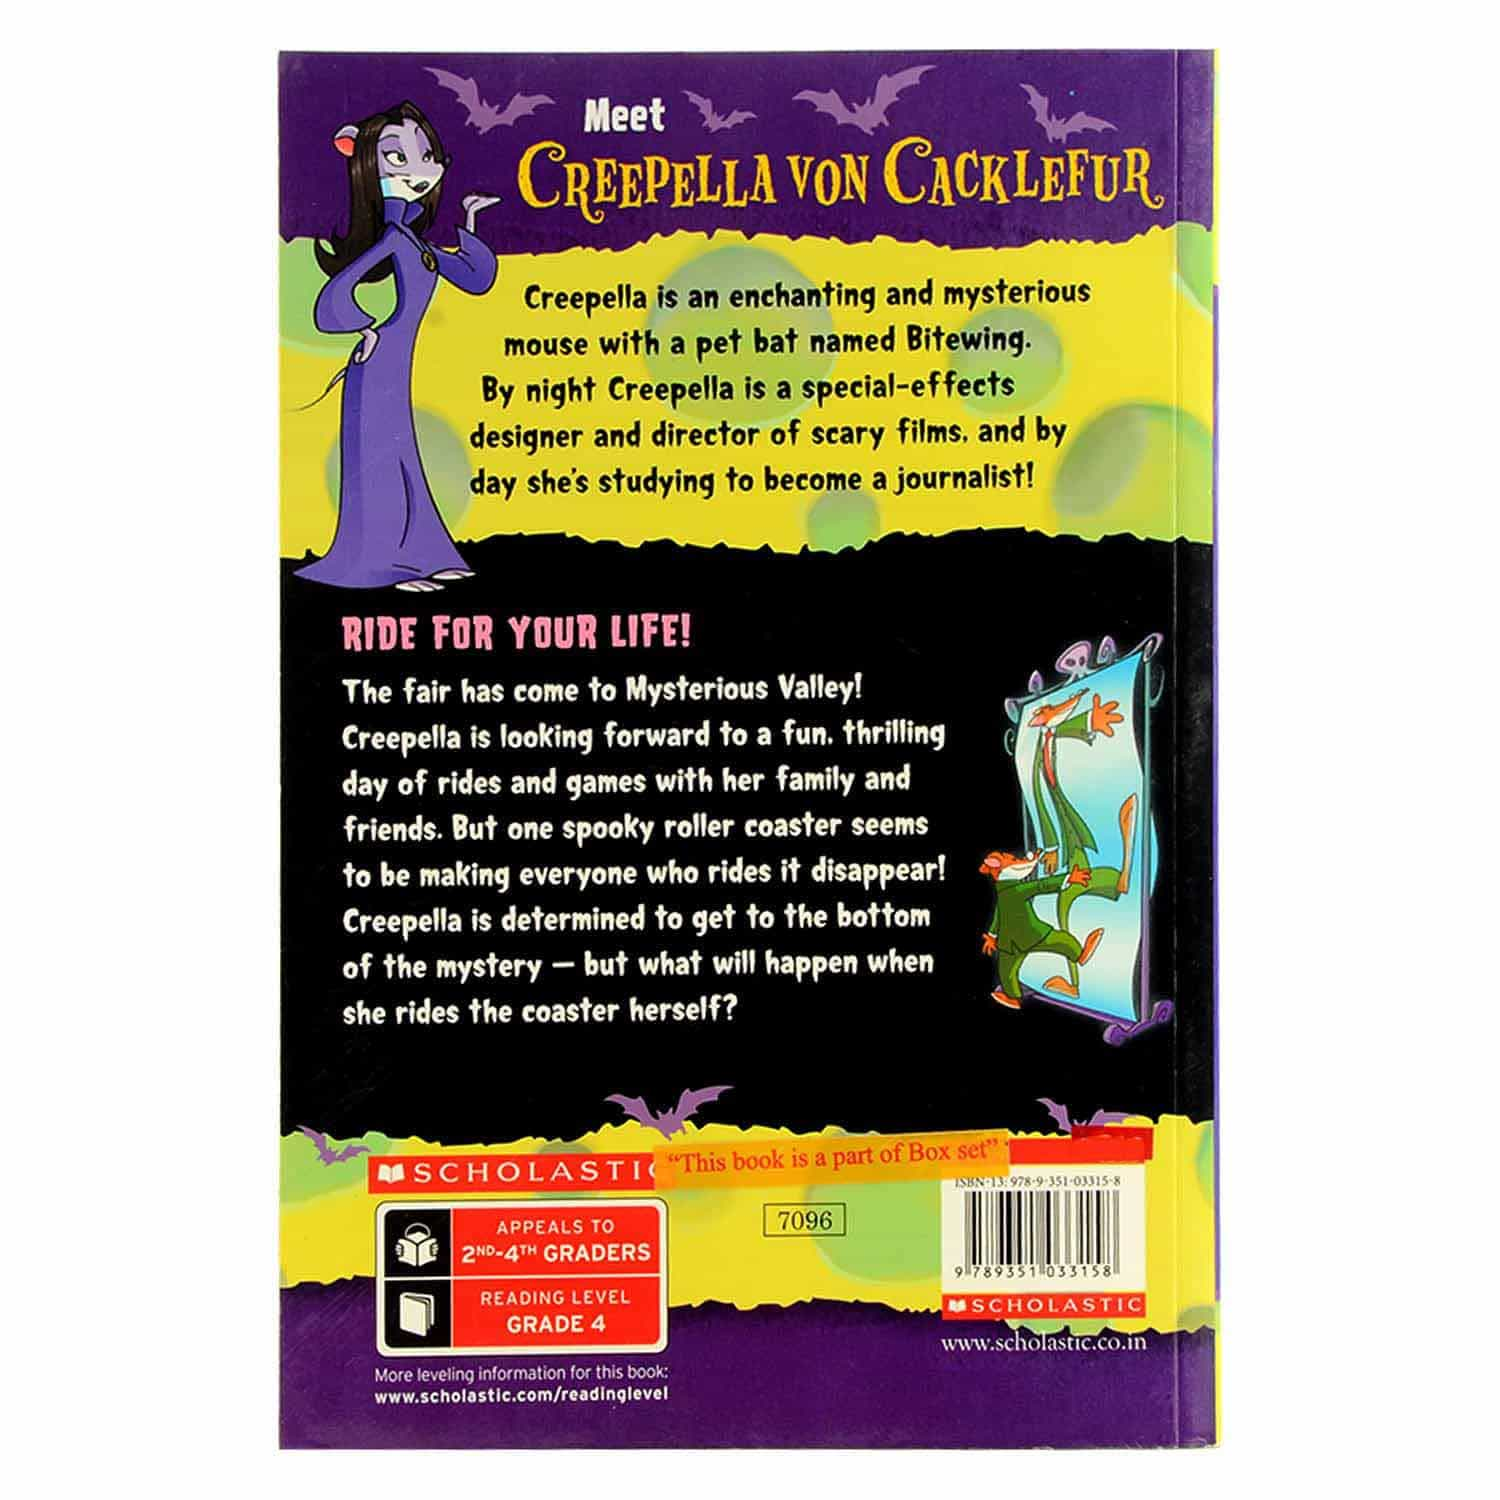 Creepella Von Cacklefur Series - Ride For Your Life